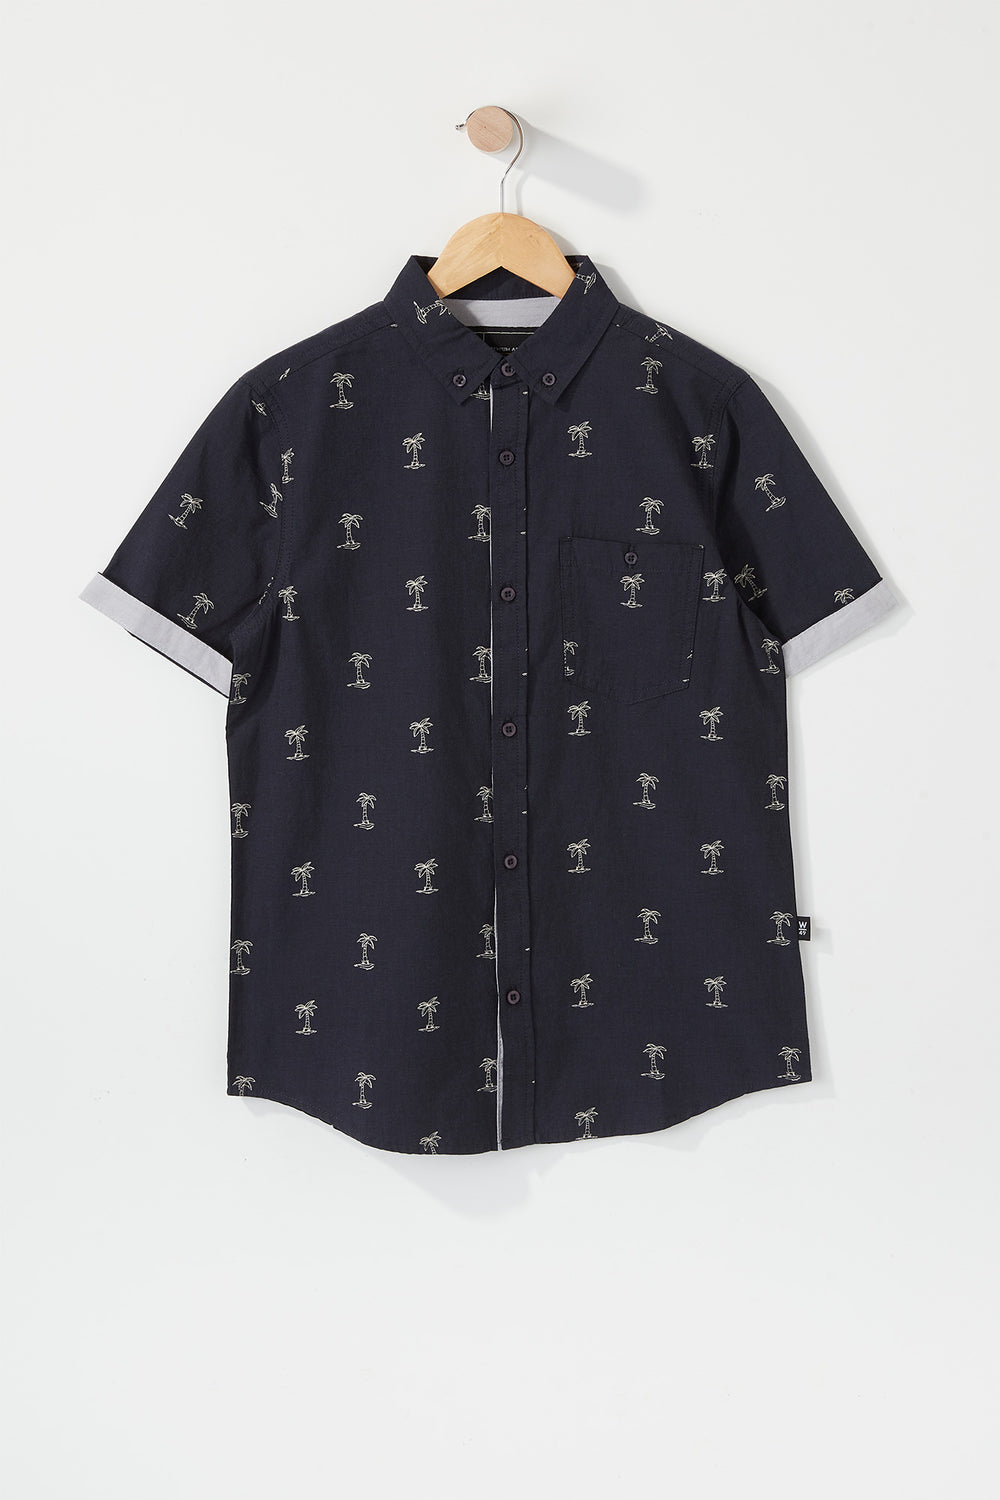 West49 Boys Ditsy Print Button-Up Dark Blue